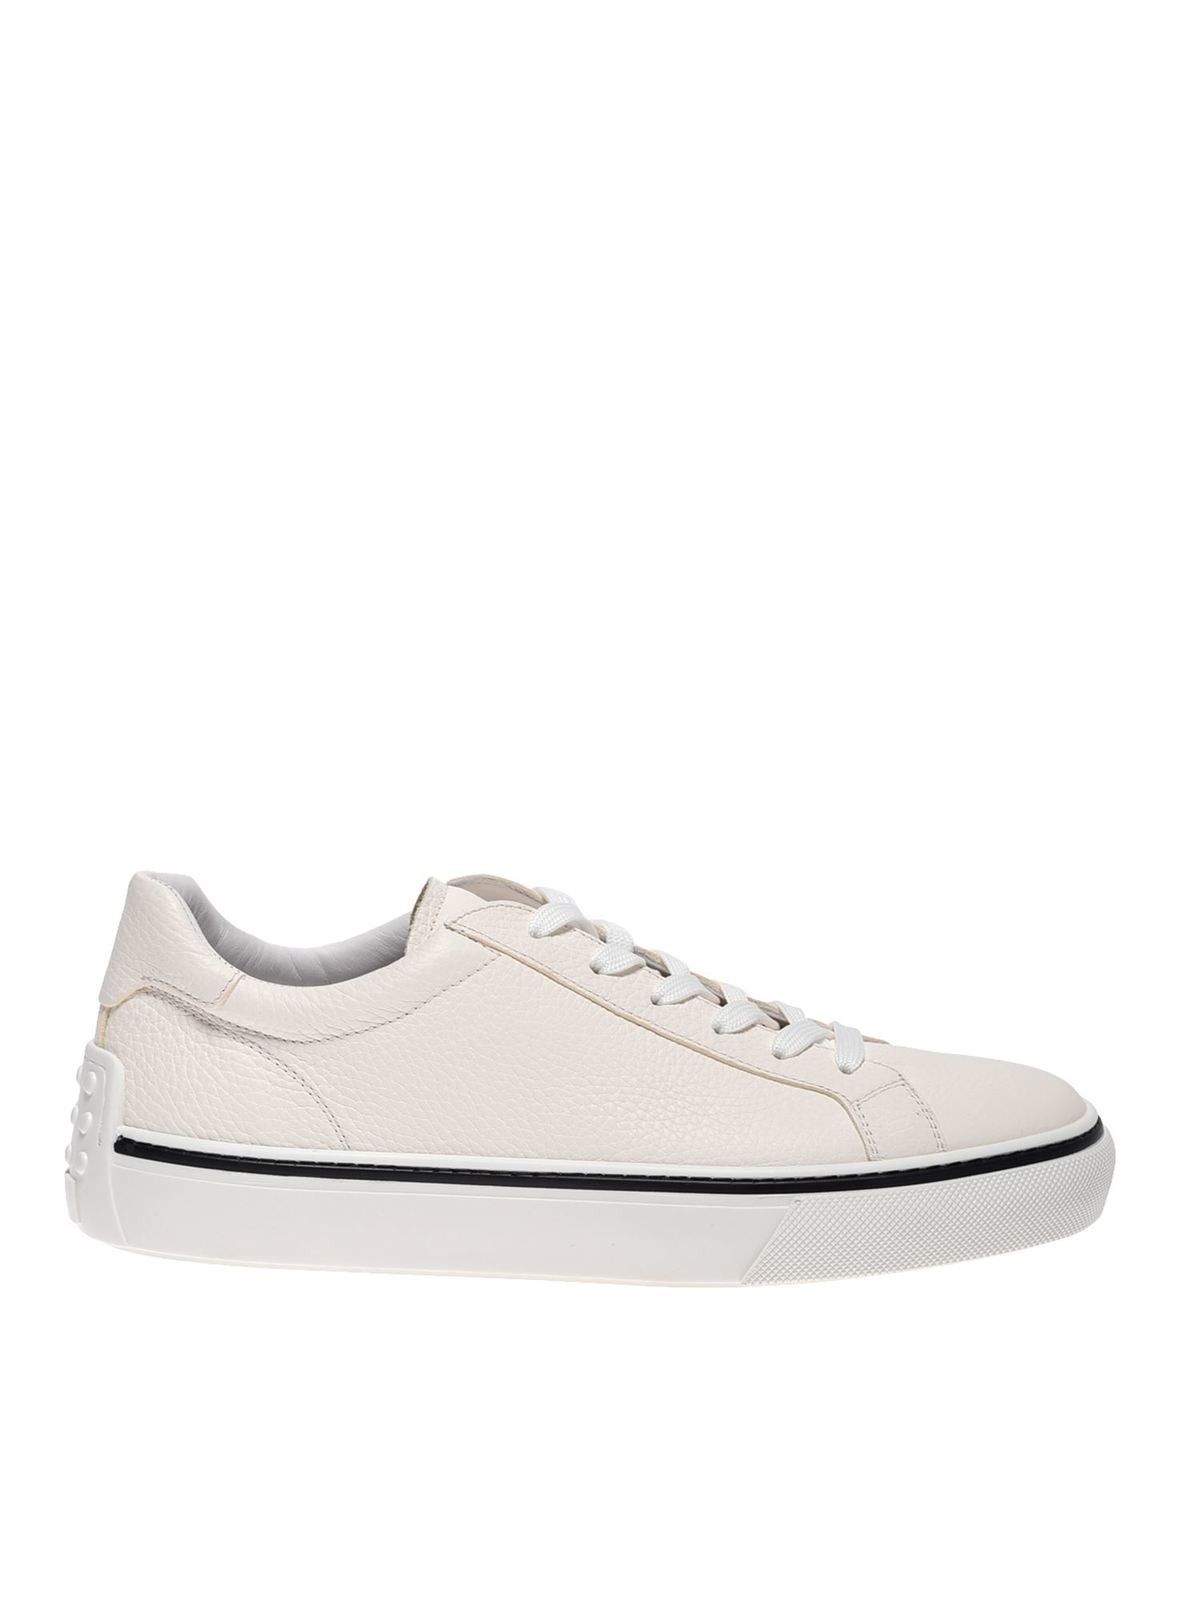 Tod's EMBOSSED LOGO SNEAKERS IN WHITE